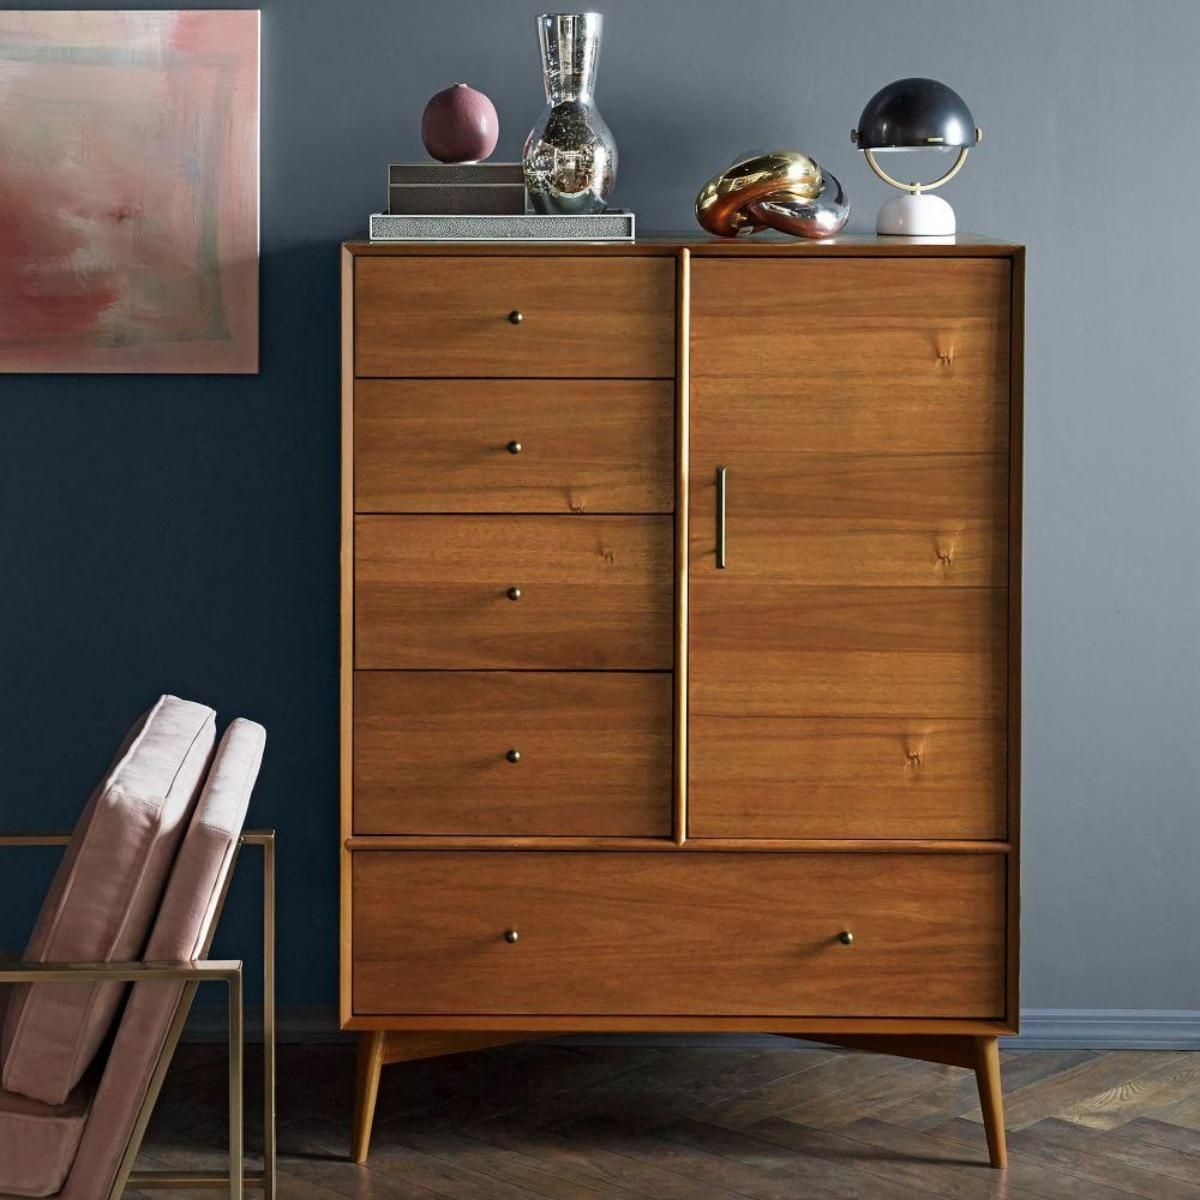 Smaller Than An Armoire And More Accommodating Than A Chest Of Drawers,